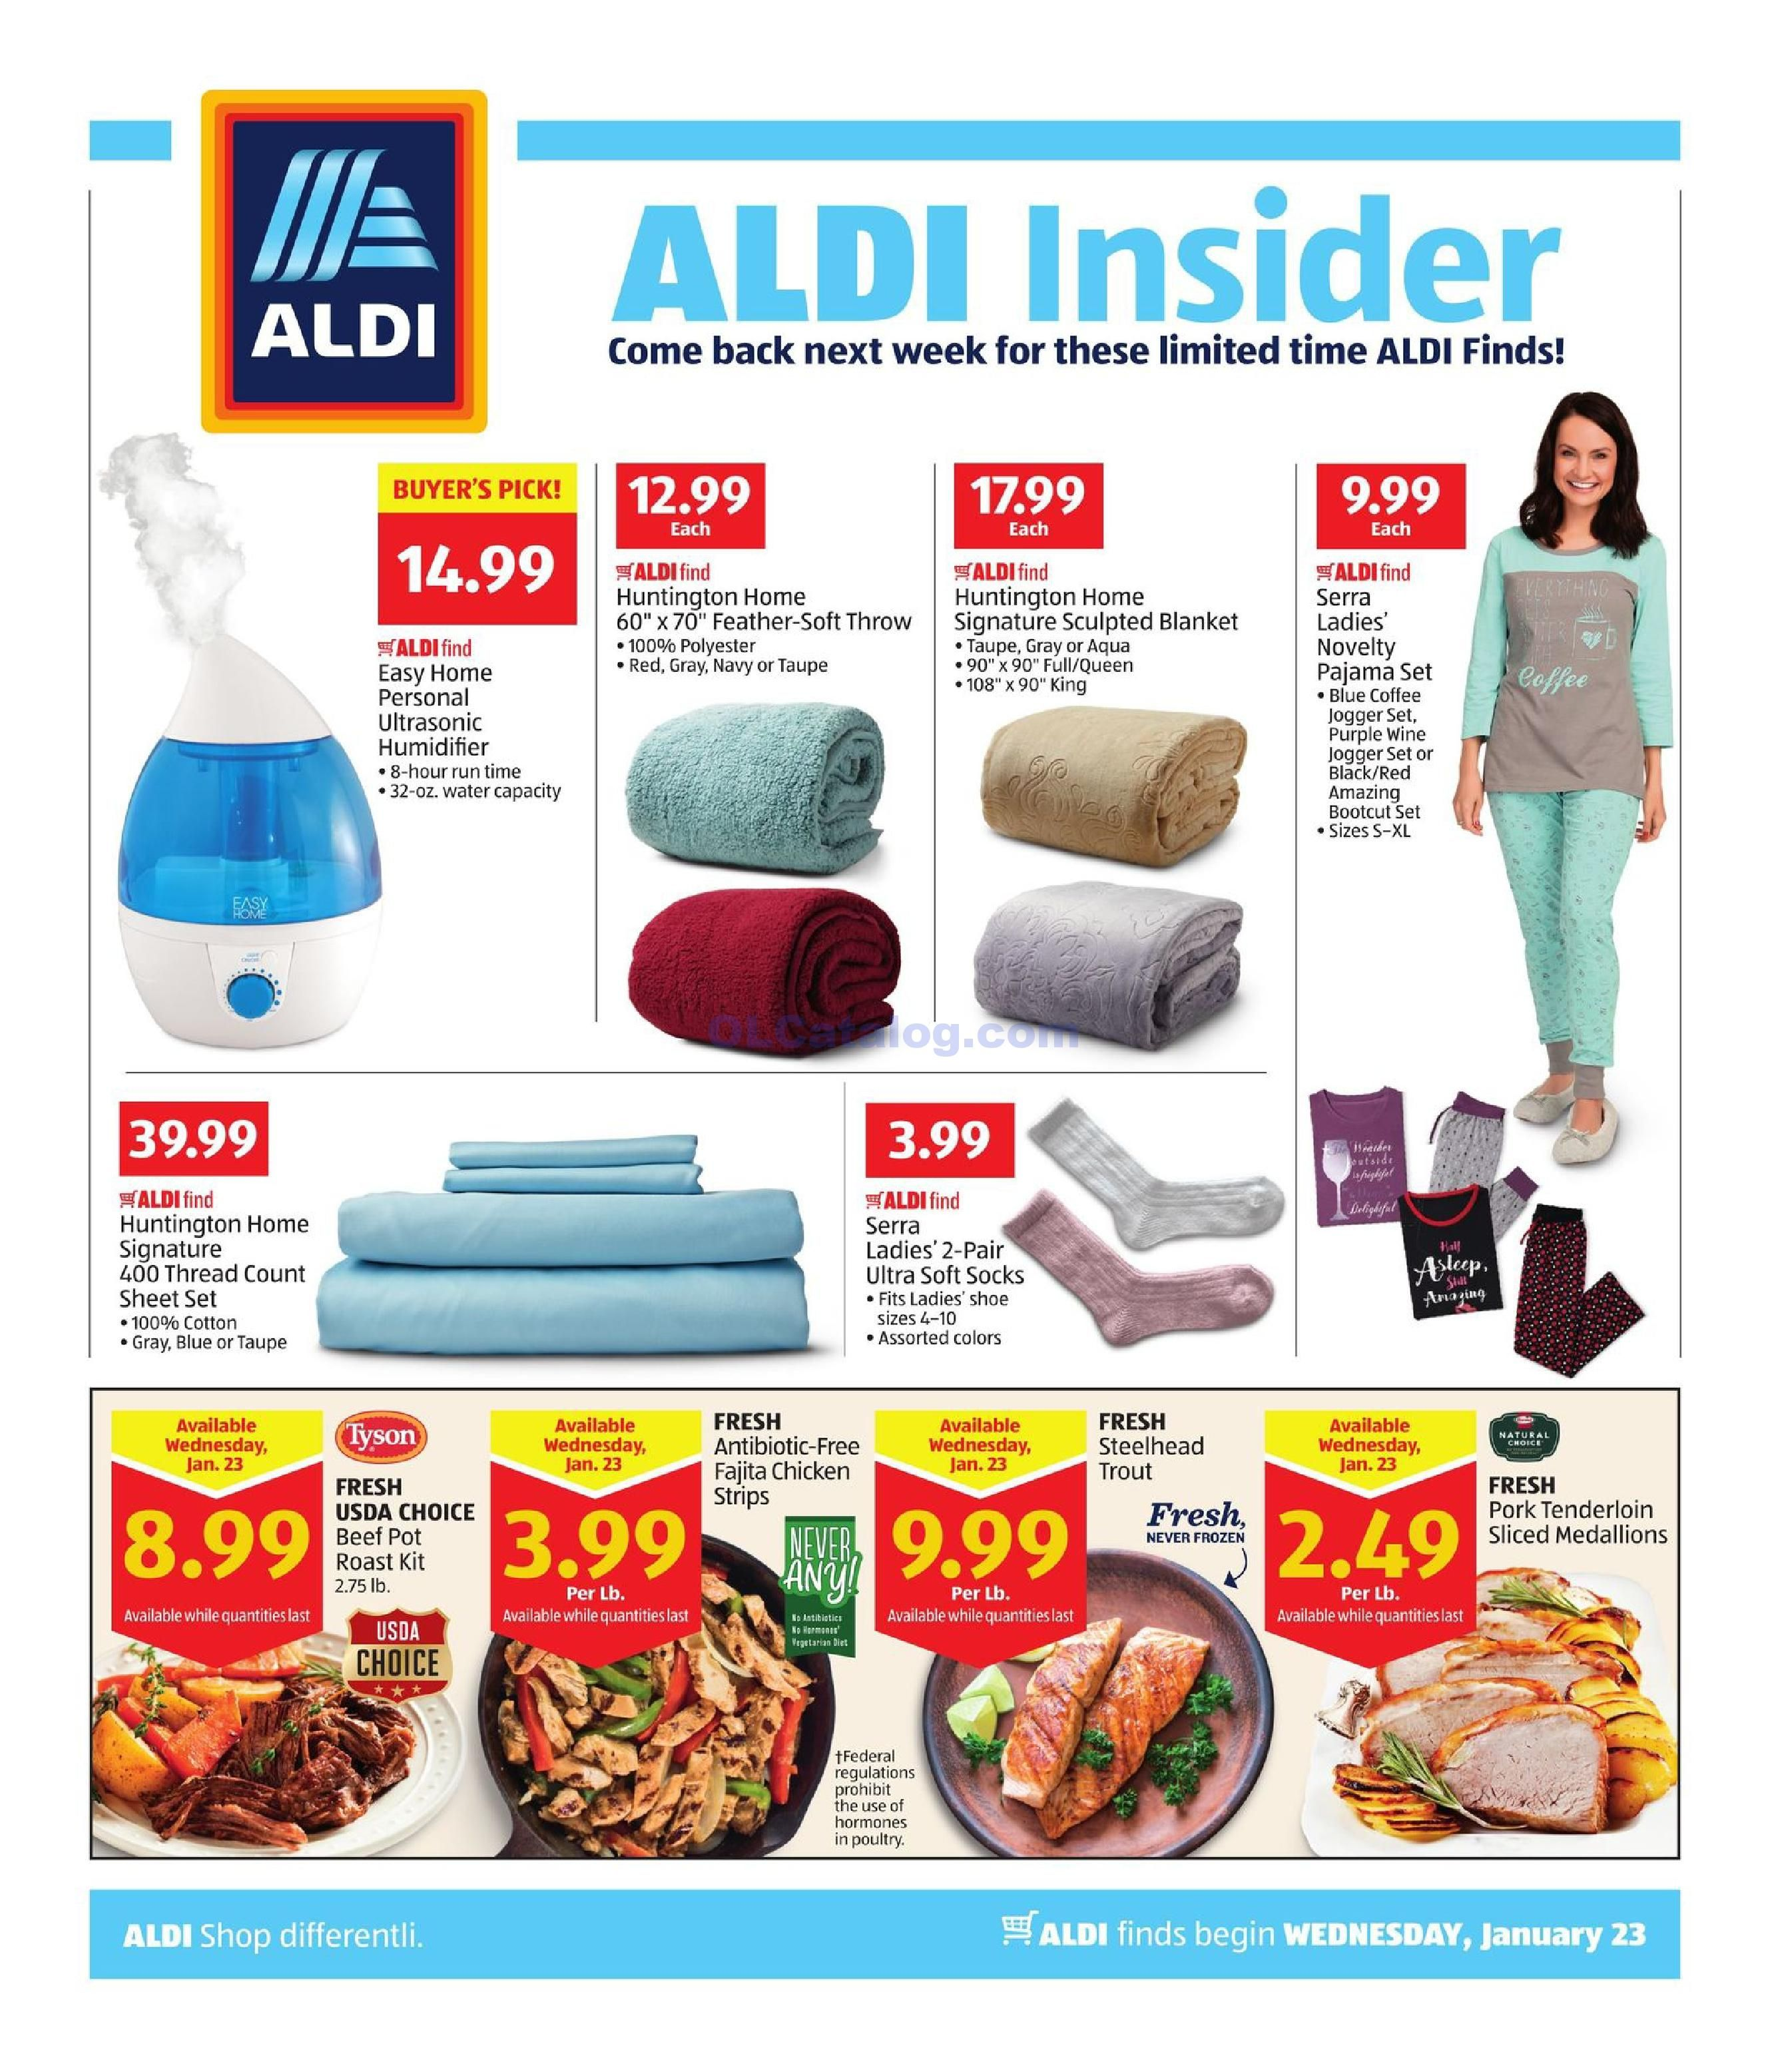 Aldi In Store Ad January 23 29 2019 View The Latest Aldi Flyer And Weekly Circular Ad For Aldi Here Likewise You Can Aldi Digital Coupons Grocery Savings